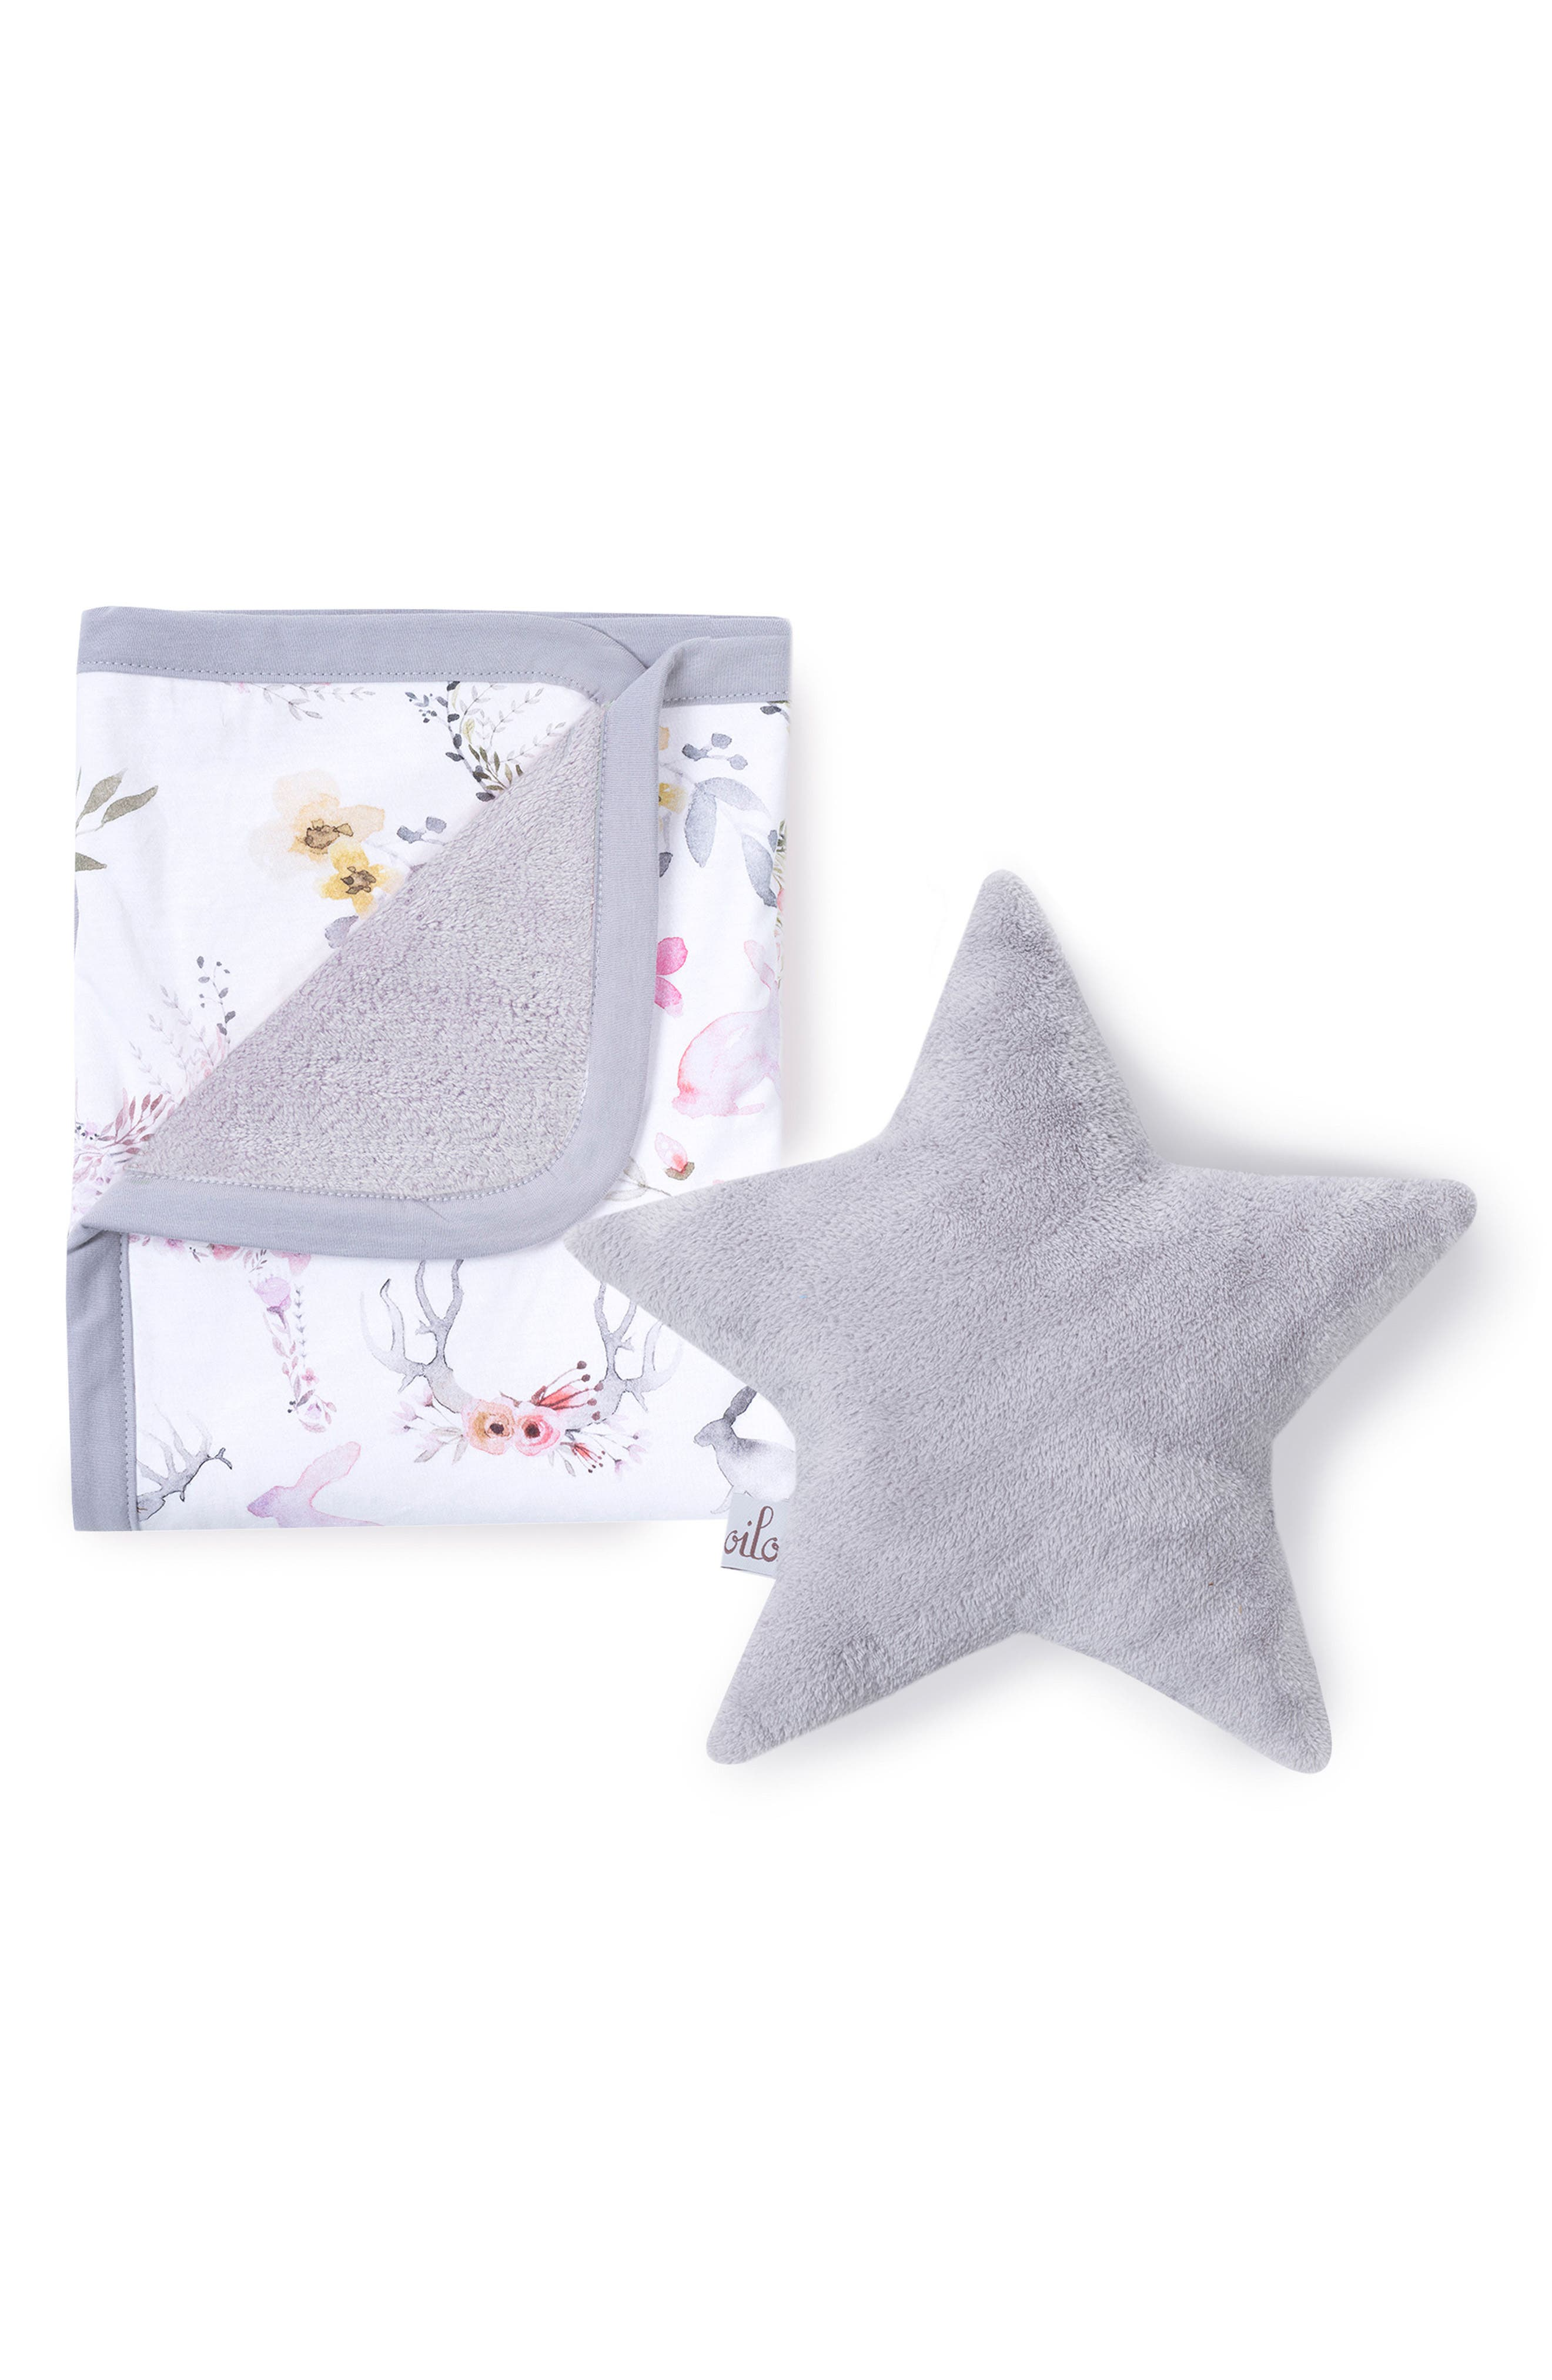 Fawn Cuddle Blanket & Star Pillow Set,                         Main,                         color, FAWN